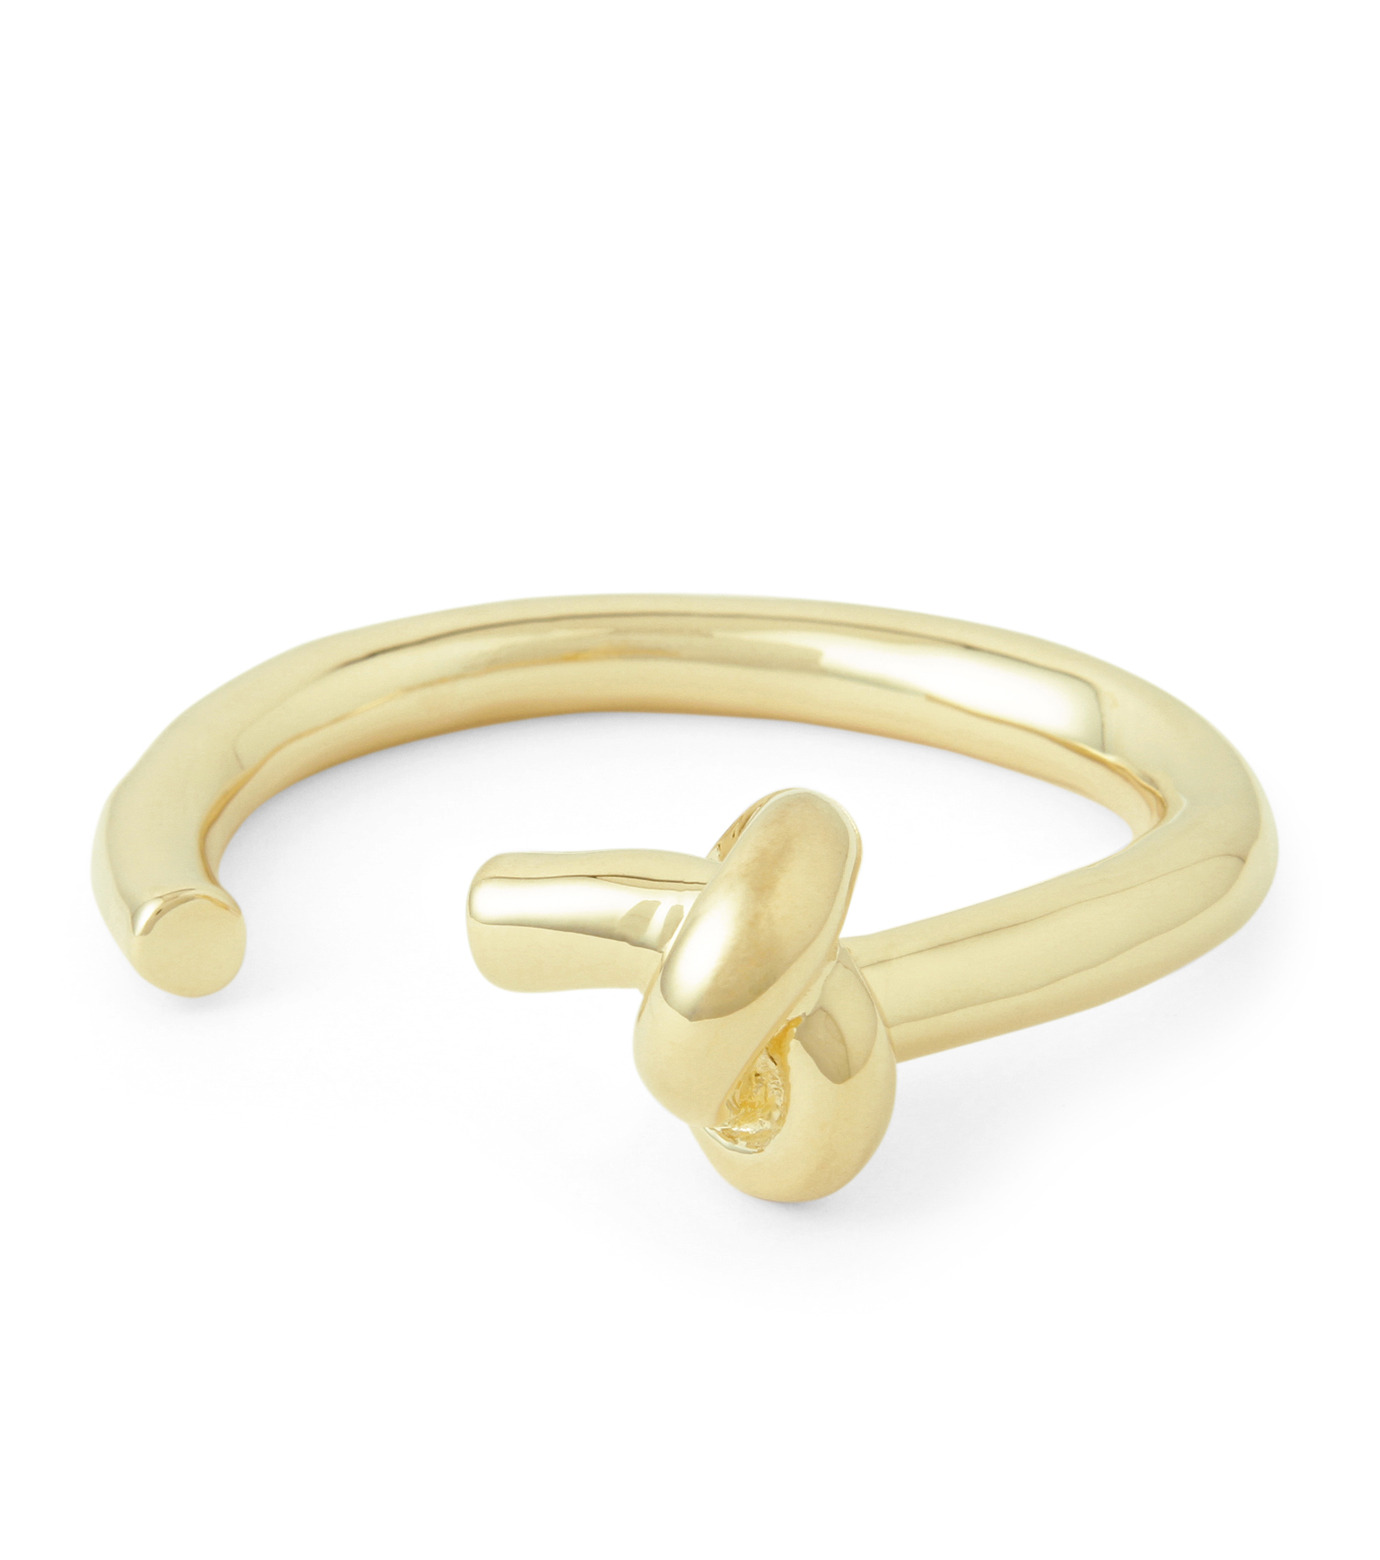 Jennifer Fisher(ジェニファーフィッシャー)のLarge Single Knot Cuff-GOLD-Knot-Cuff-S-2 拡大詳細画像1